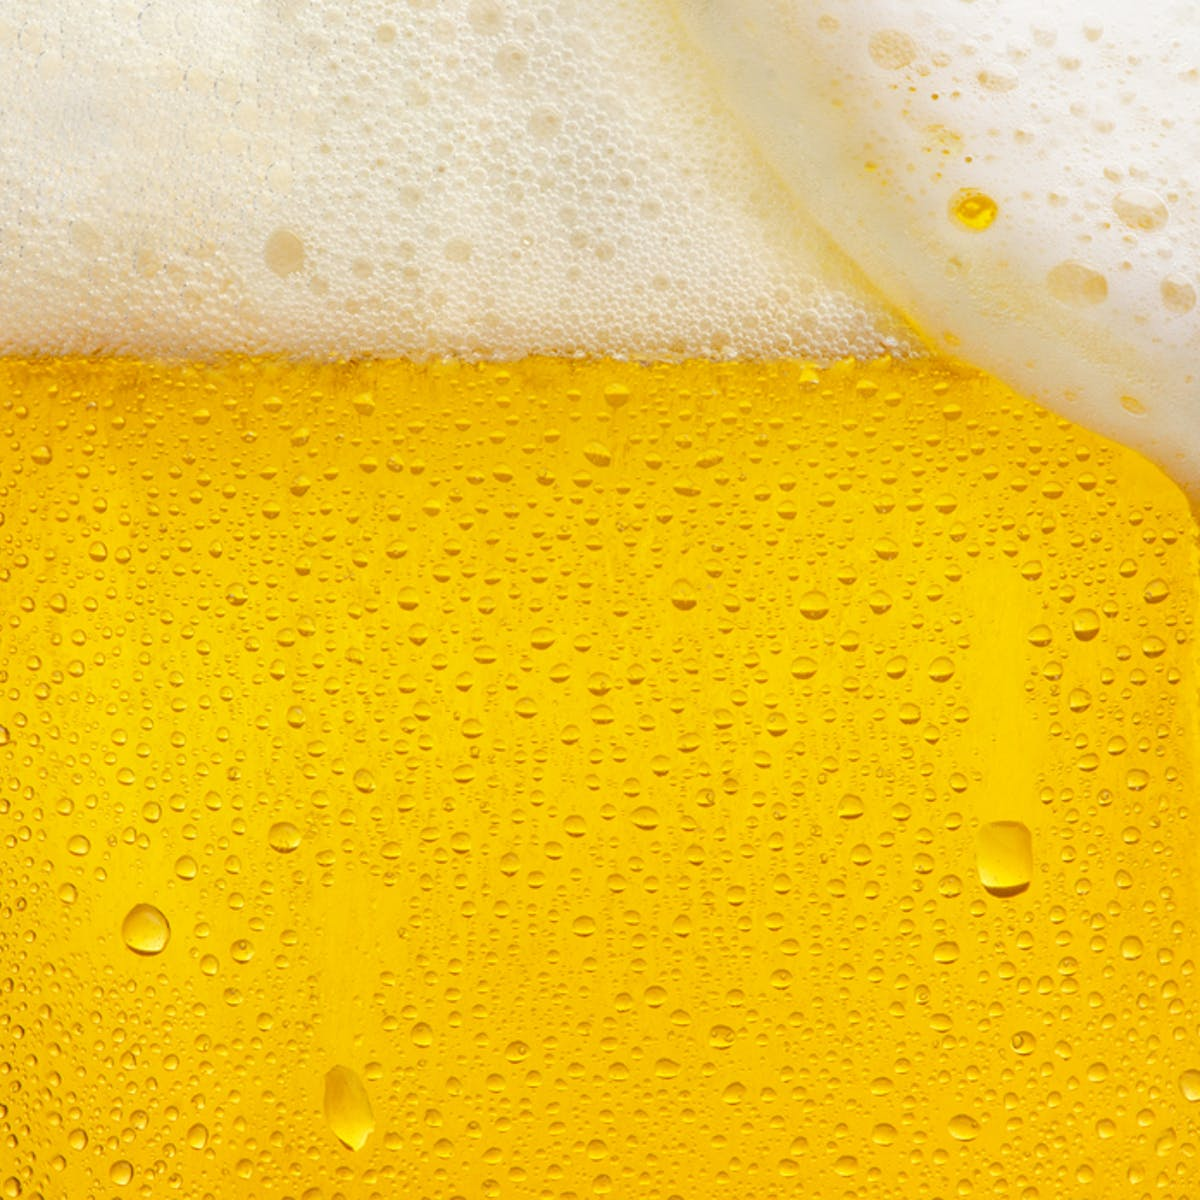 Is it OK to have a beer after exercise?